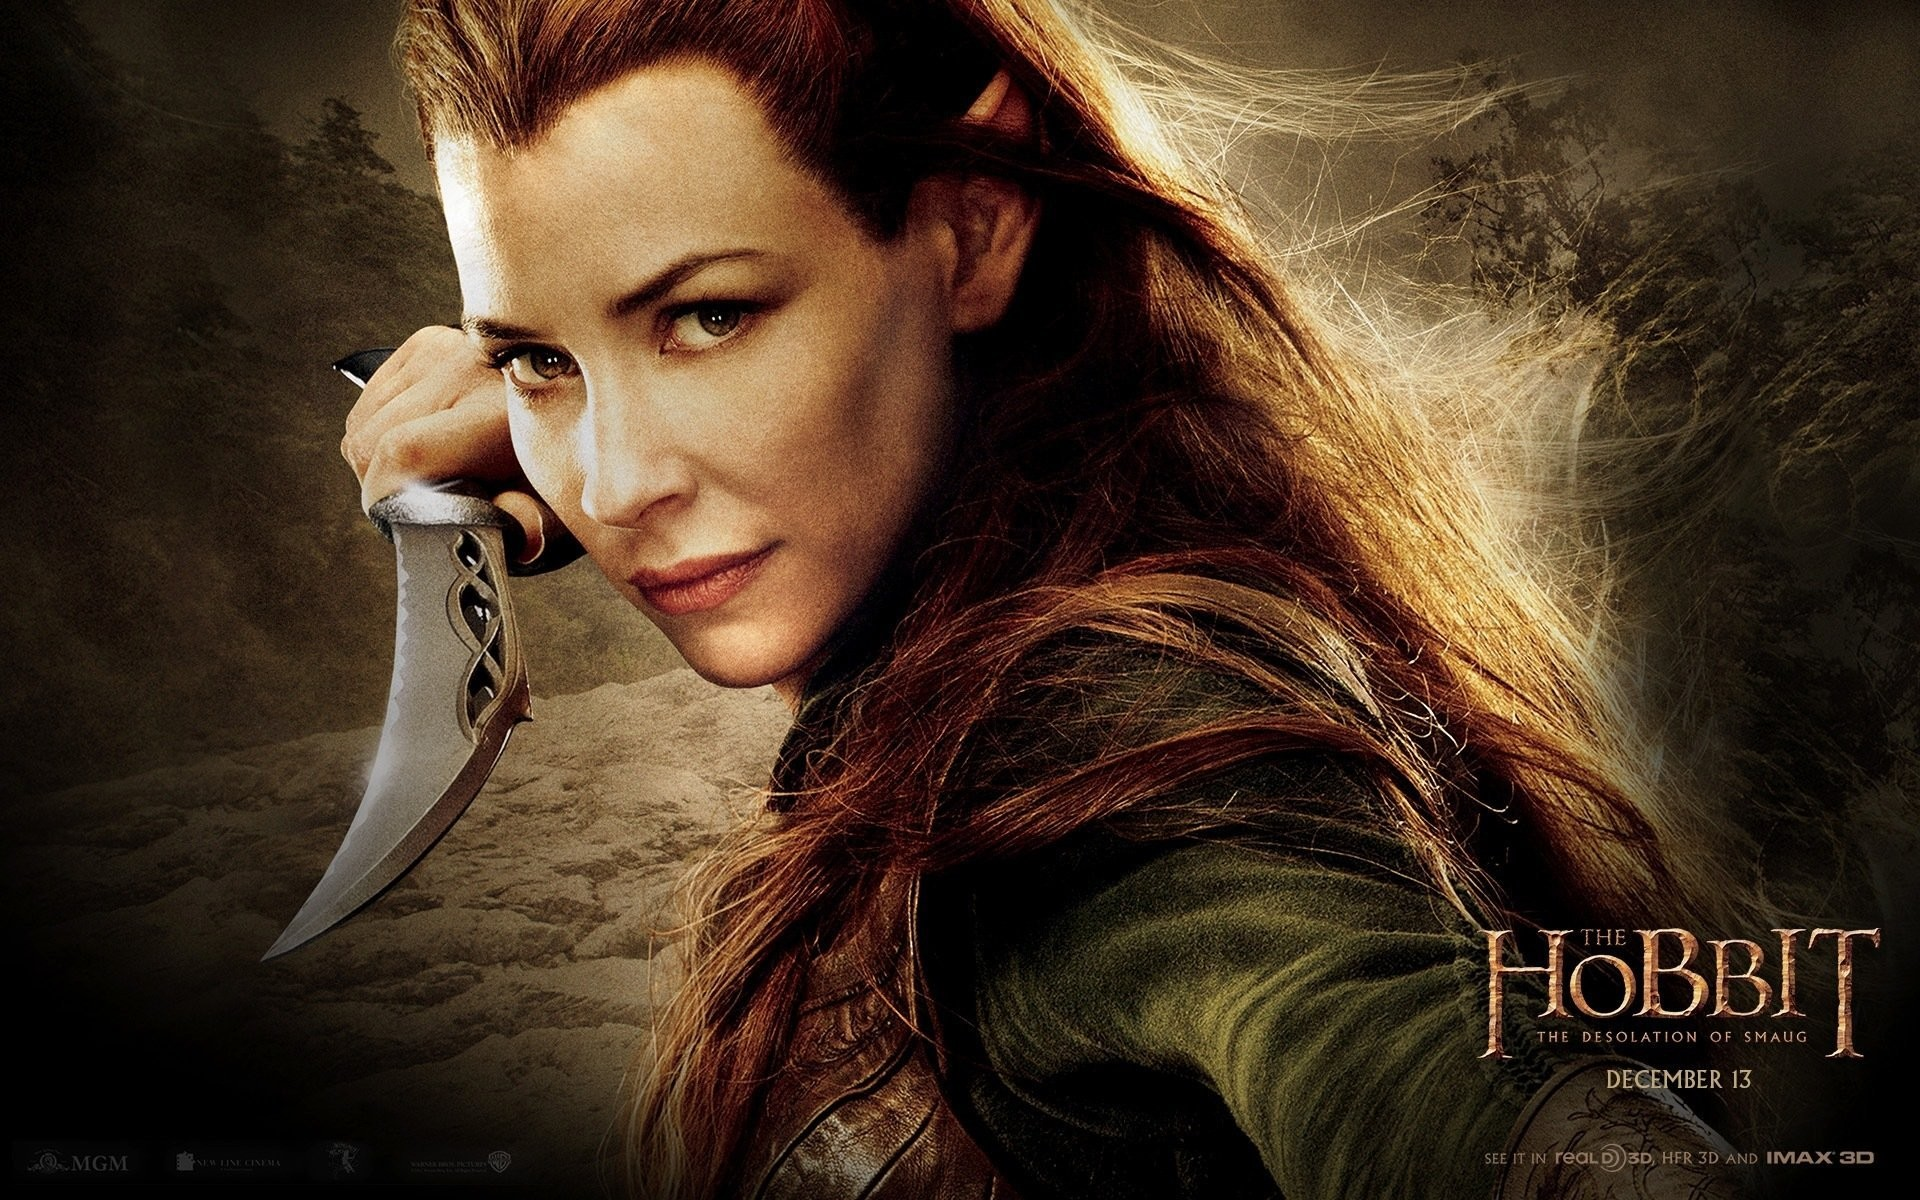 the hobbit the hobbit: the desolation of smaug evangeline lilly tauriel elf  mirkwood hobbies the